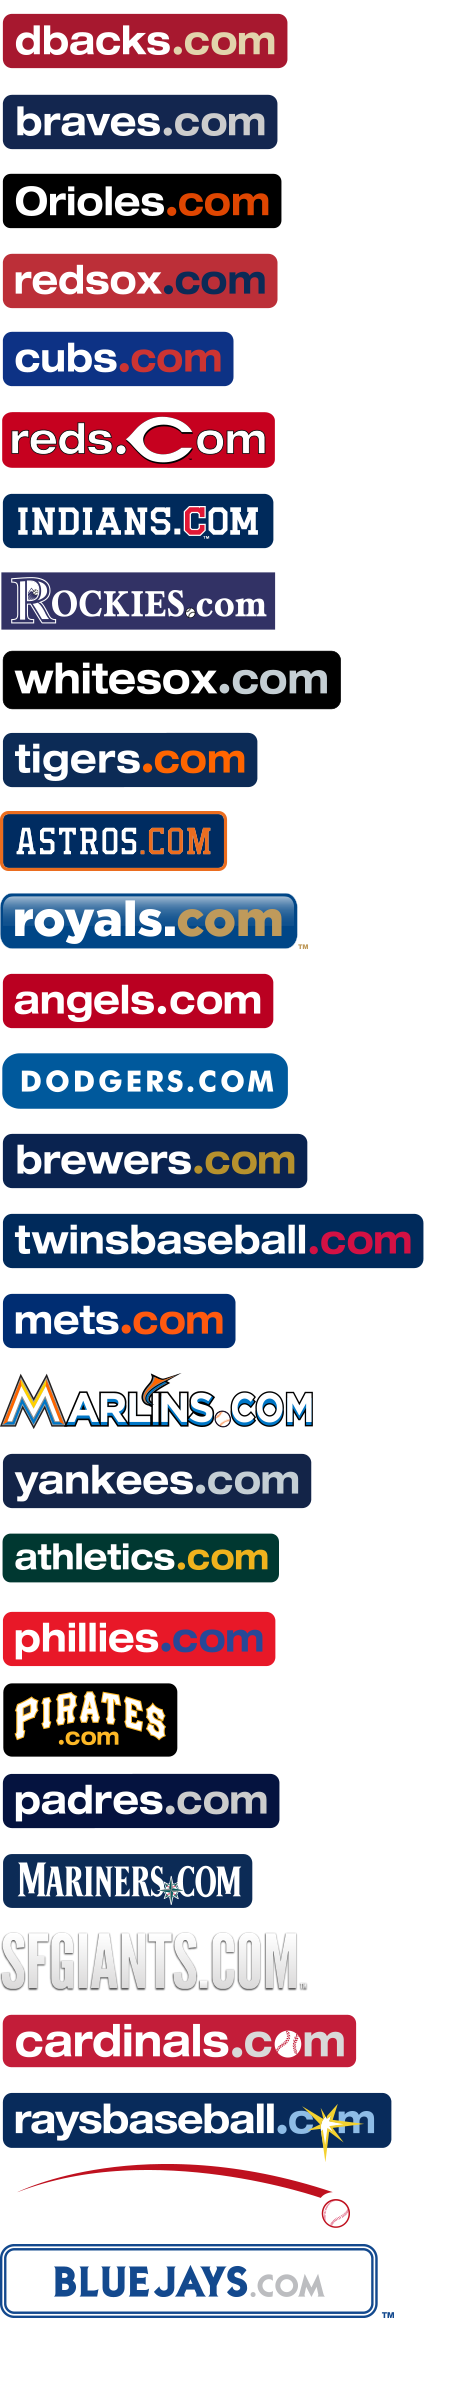 Back to Los Angeles Dodgers.com